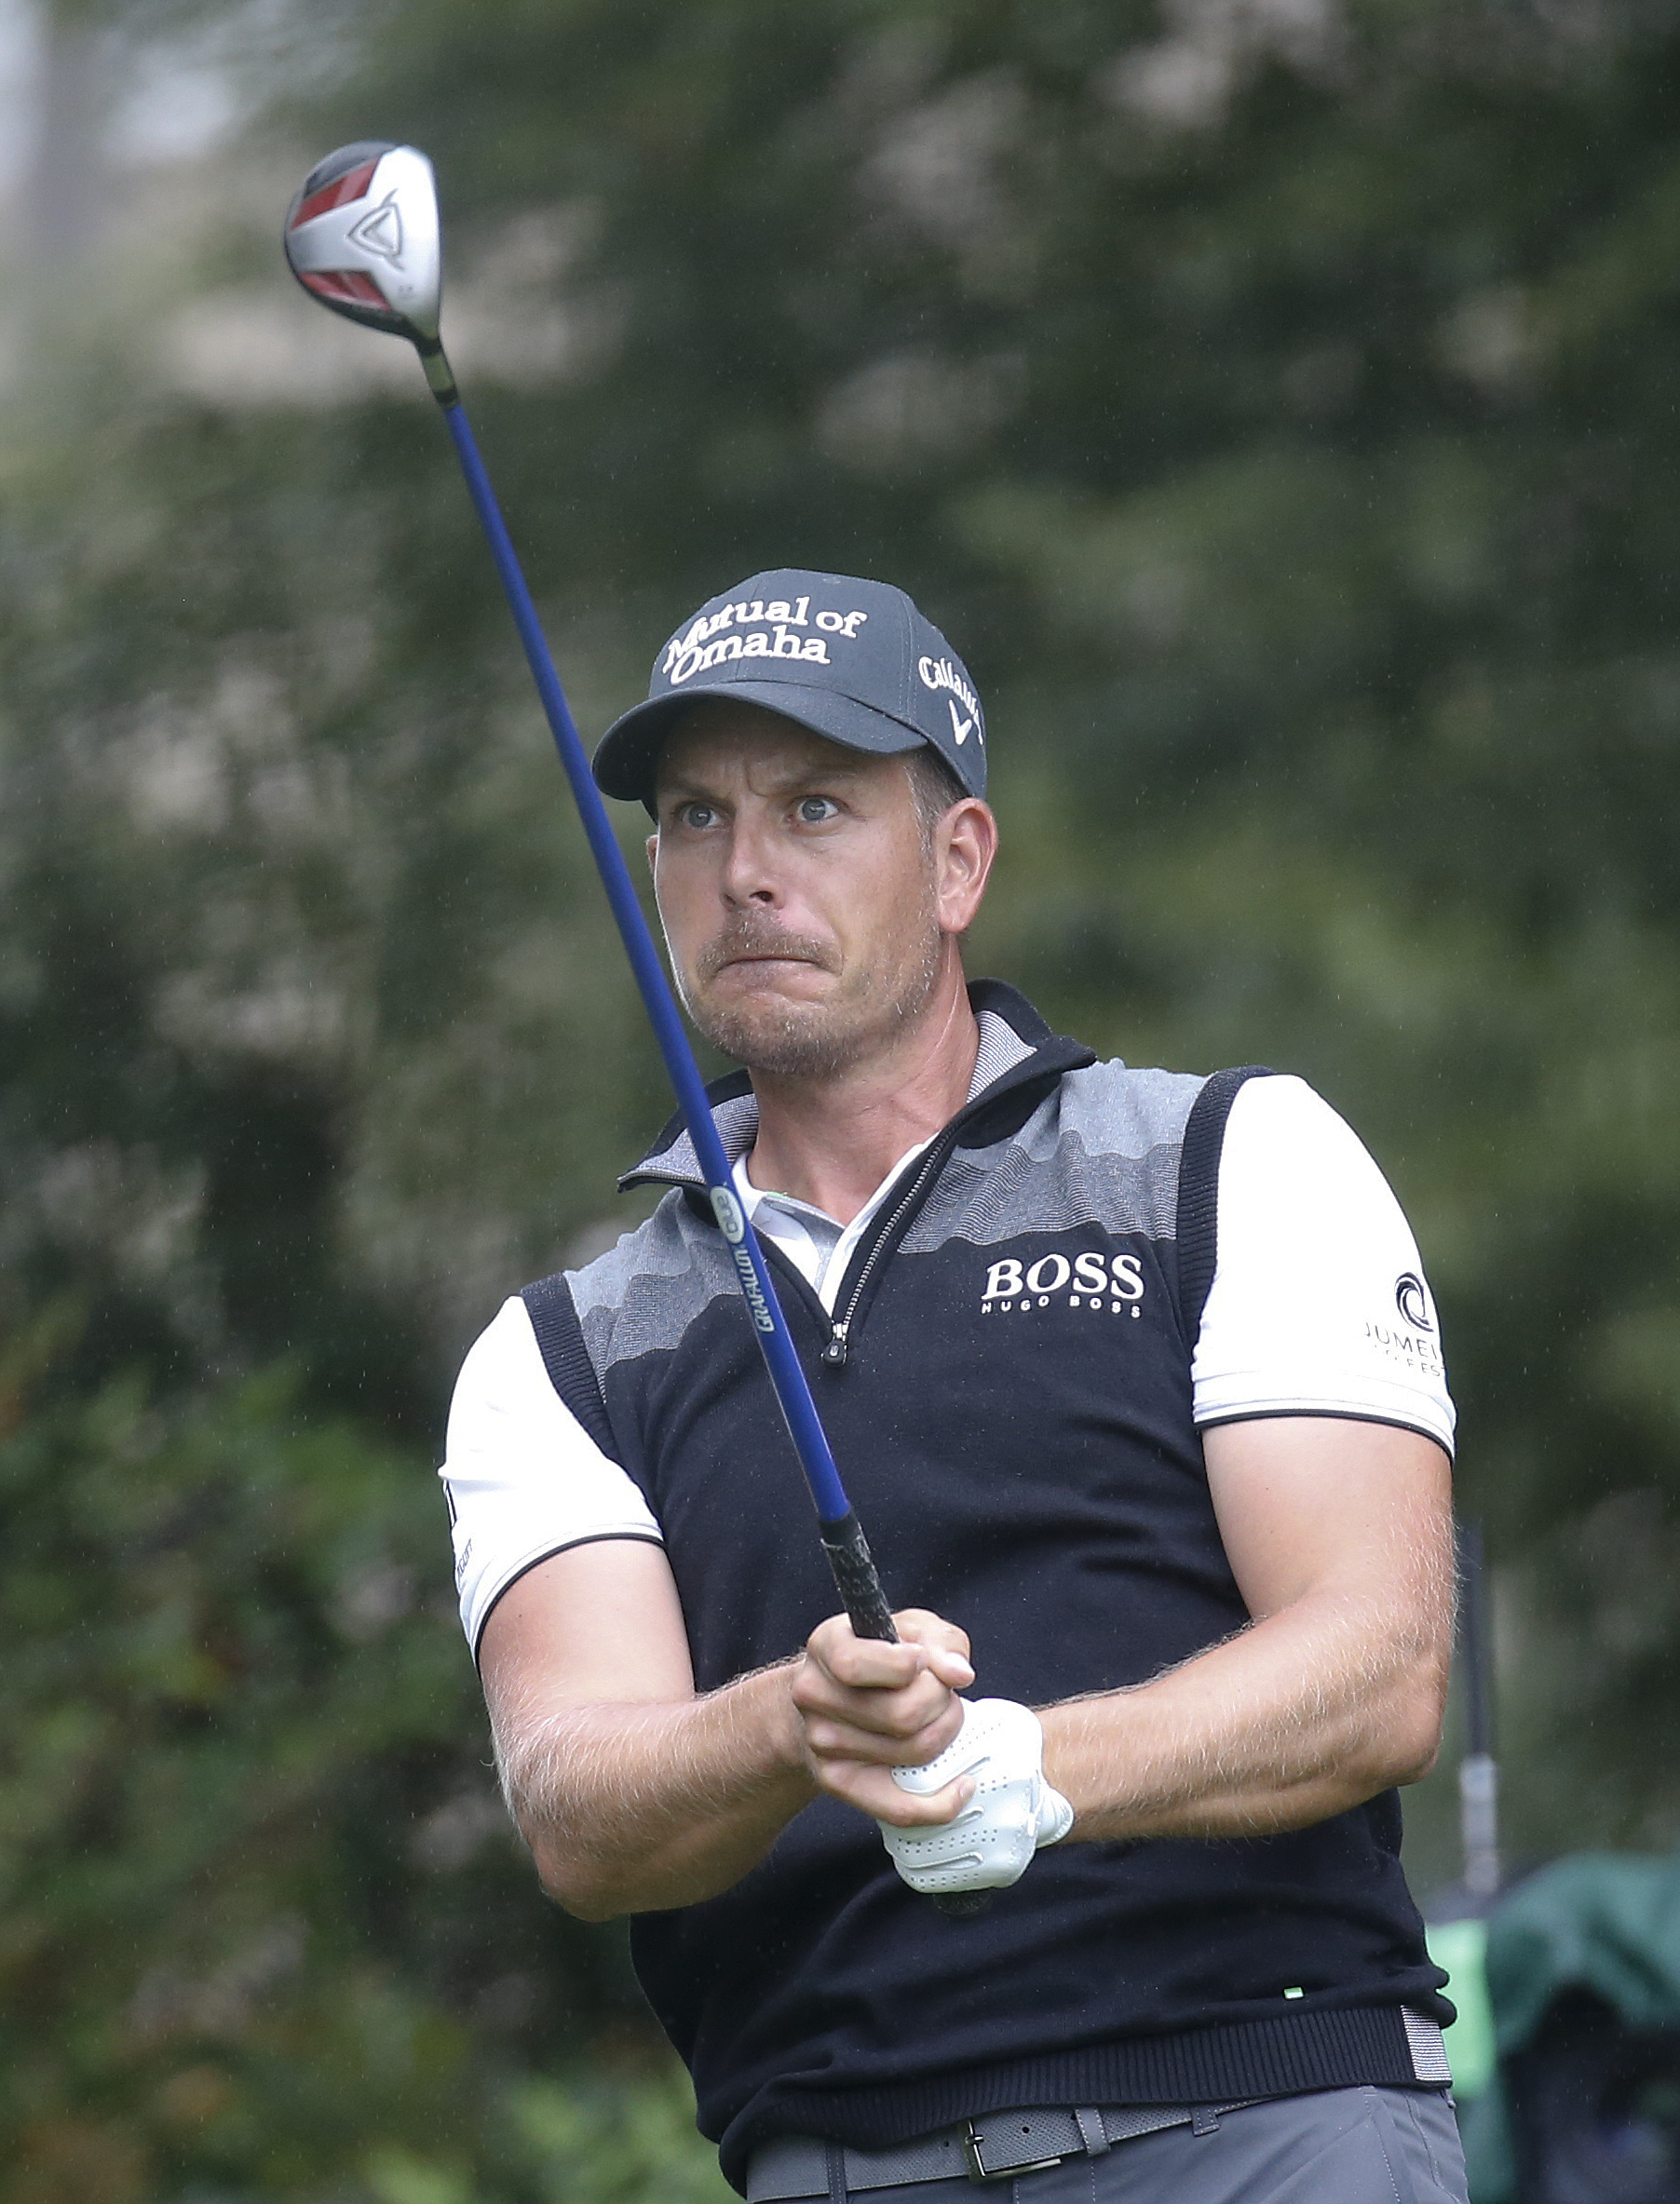 Henrik Stenson watches his tee shot on the fourth hole during the second round of the Tour Championship golf tournament at East Lake Club Friday, Sept. 25, 2015, in Atlanta. (AP Photo/John Bazemore)